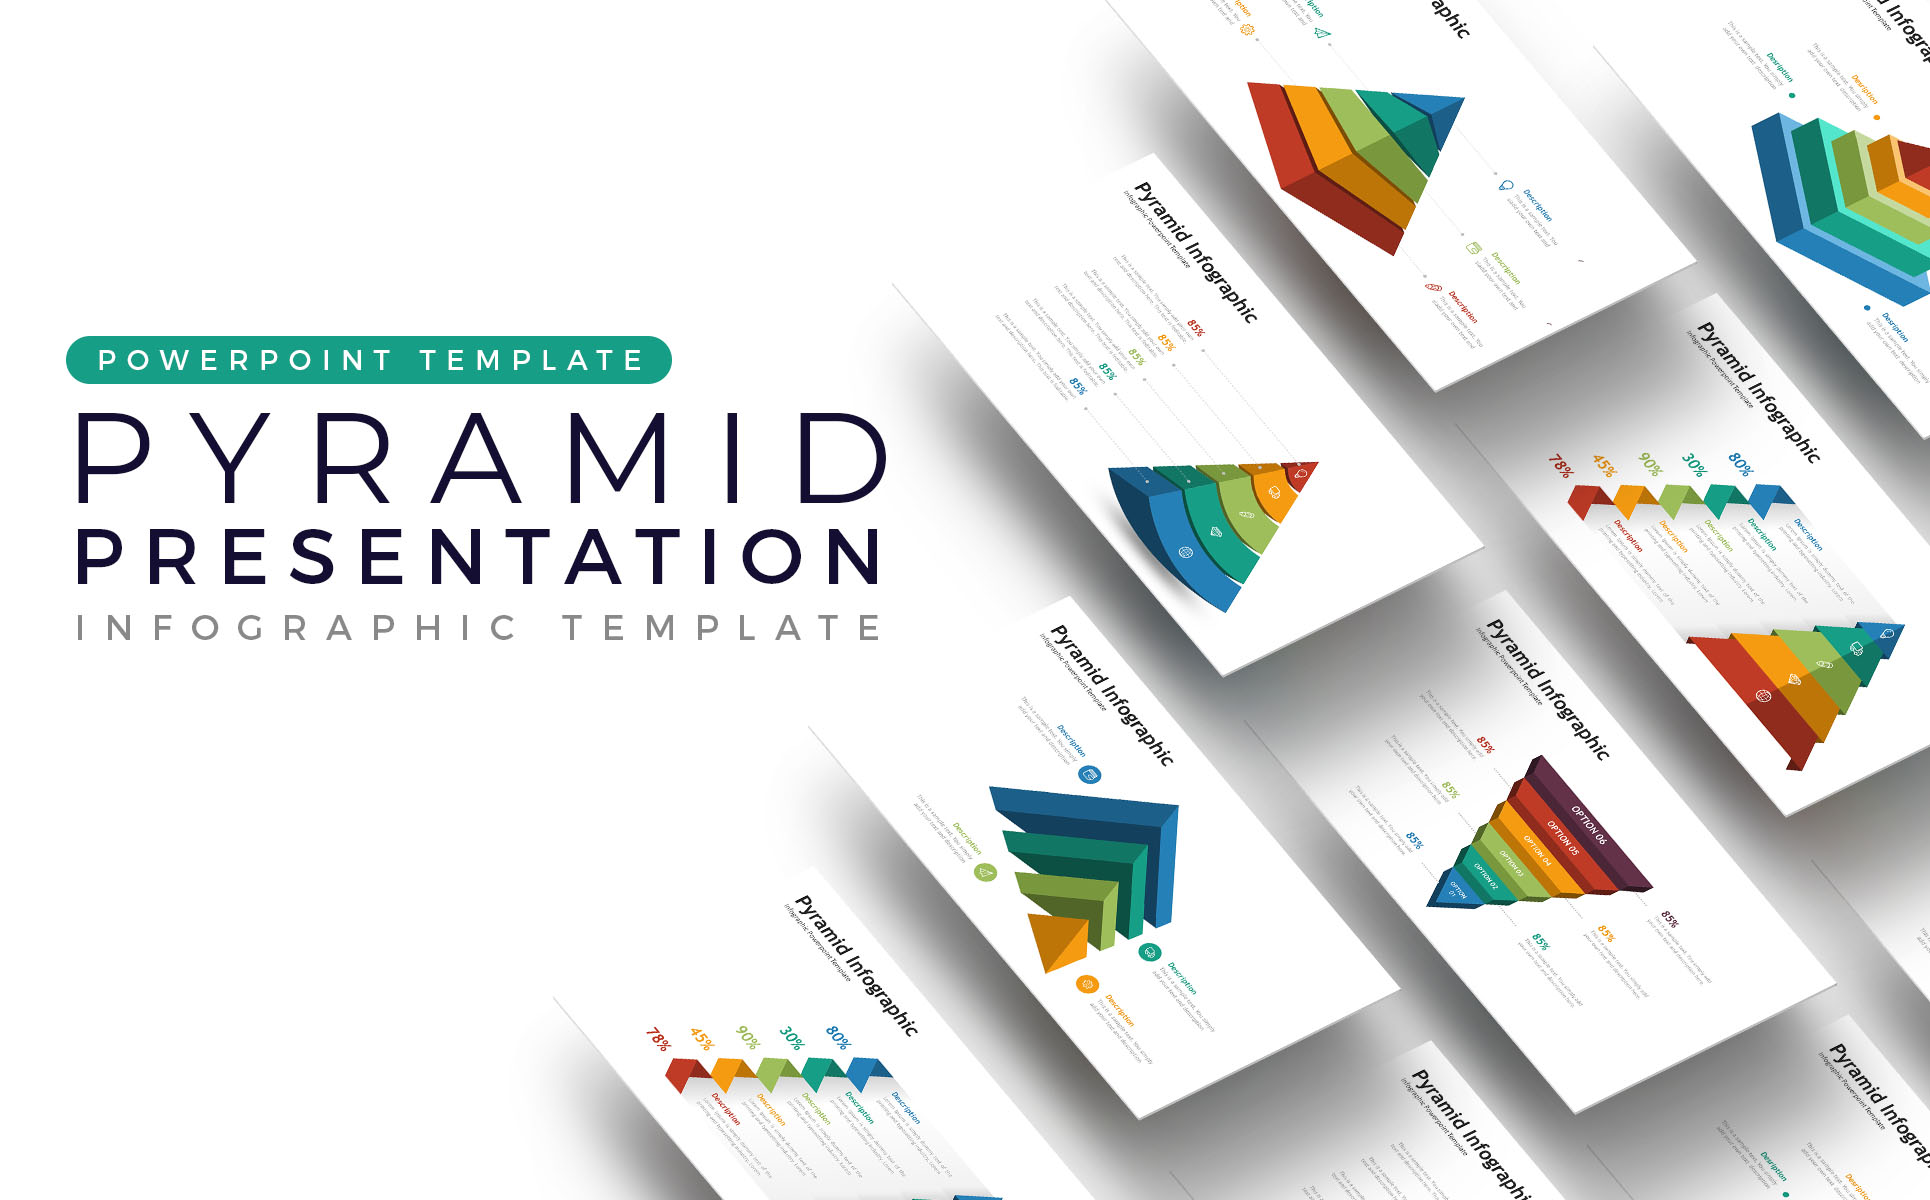 Pyramid Presentation - Infographic PowerPoint Template